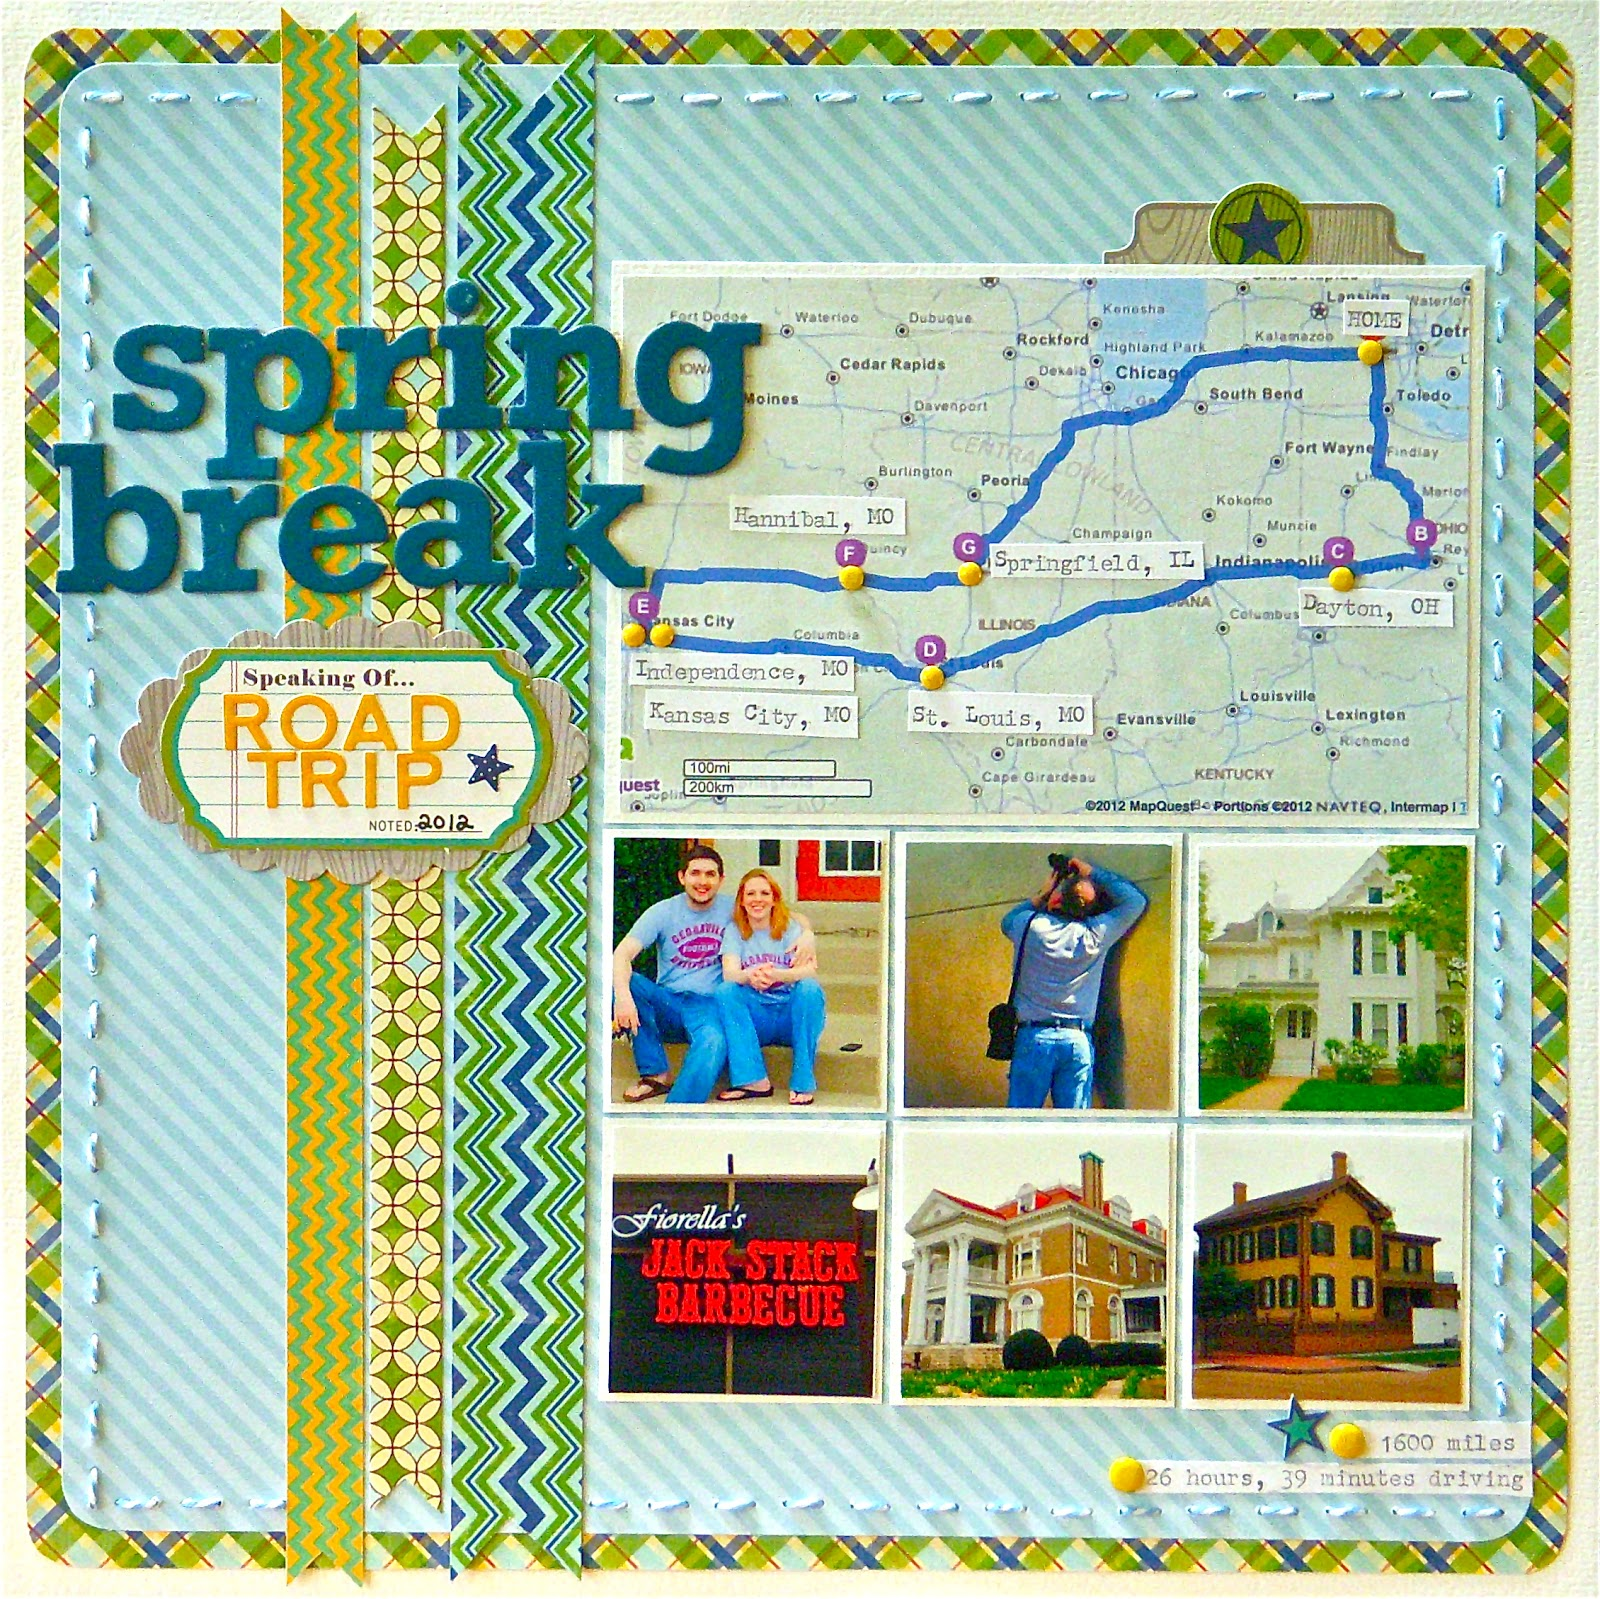 How to scrapbook a road trip - Monday August 13 2012